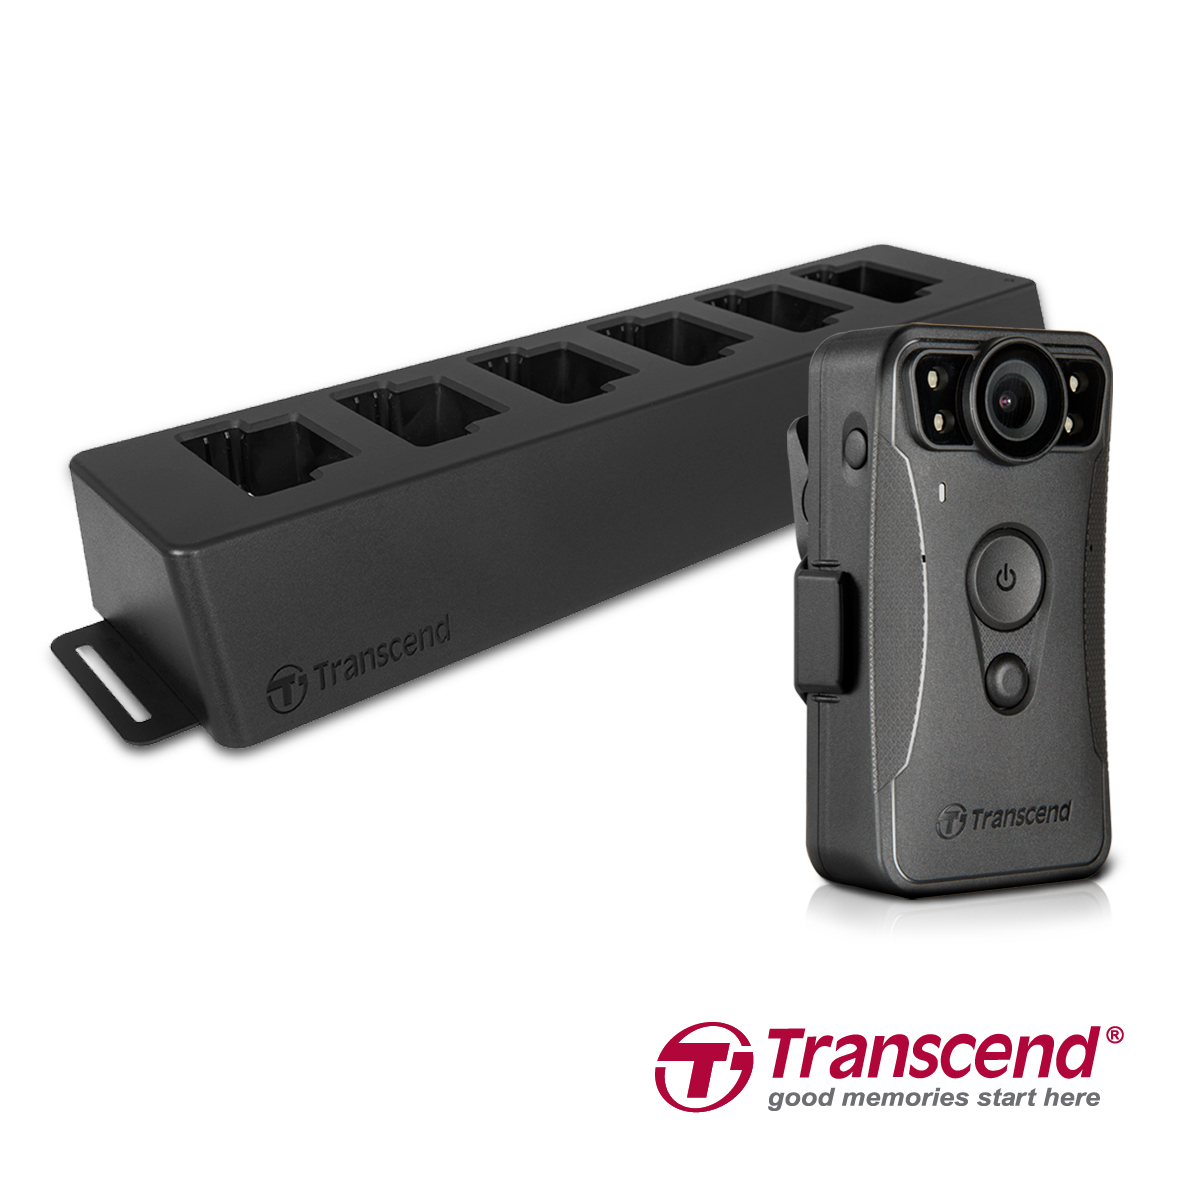 Transcend DrivePro Body 30 Body Camera